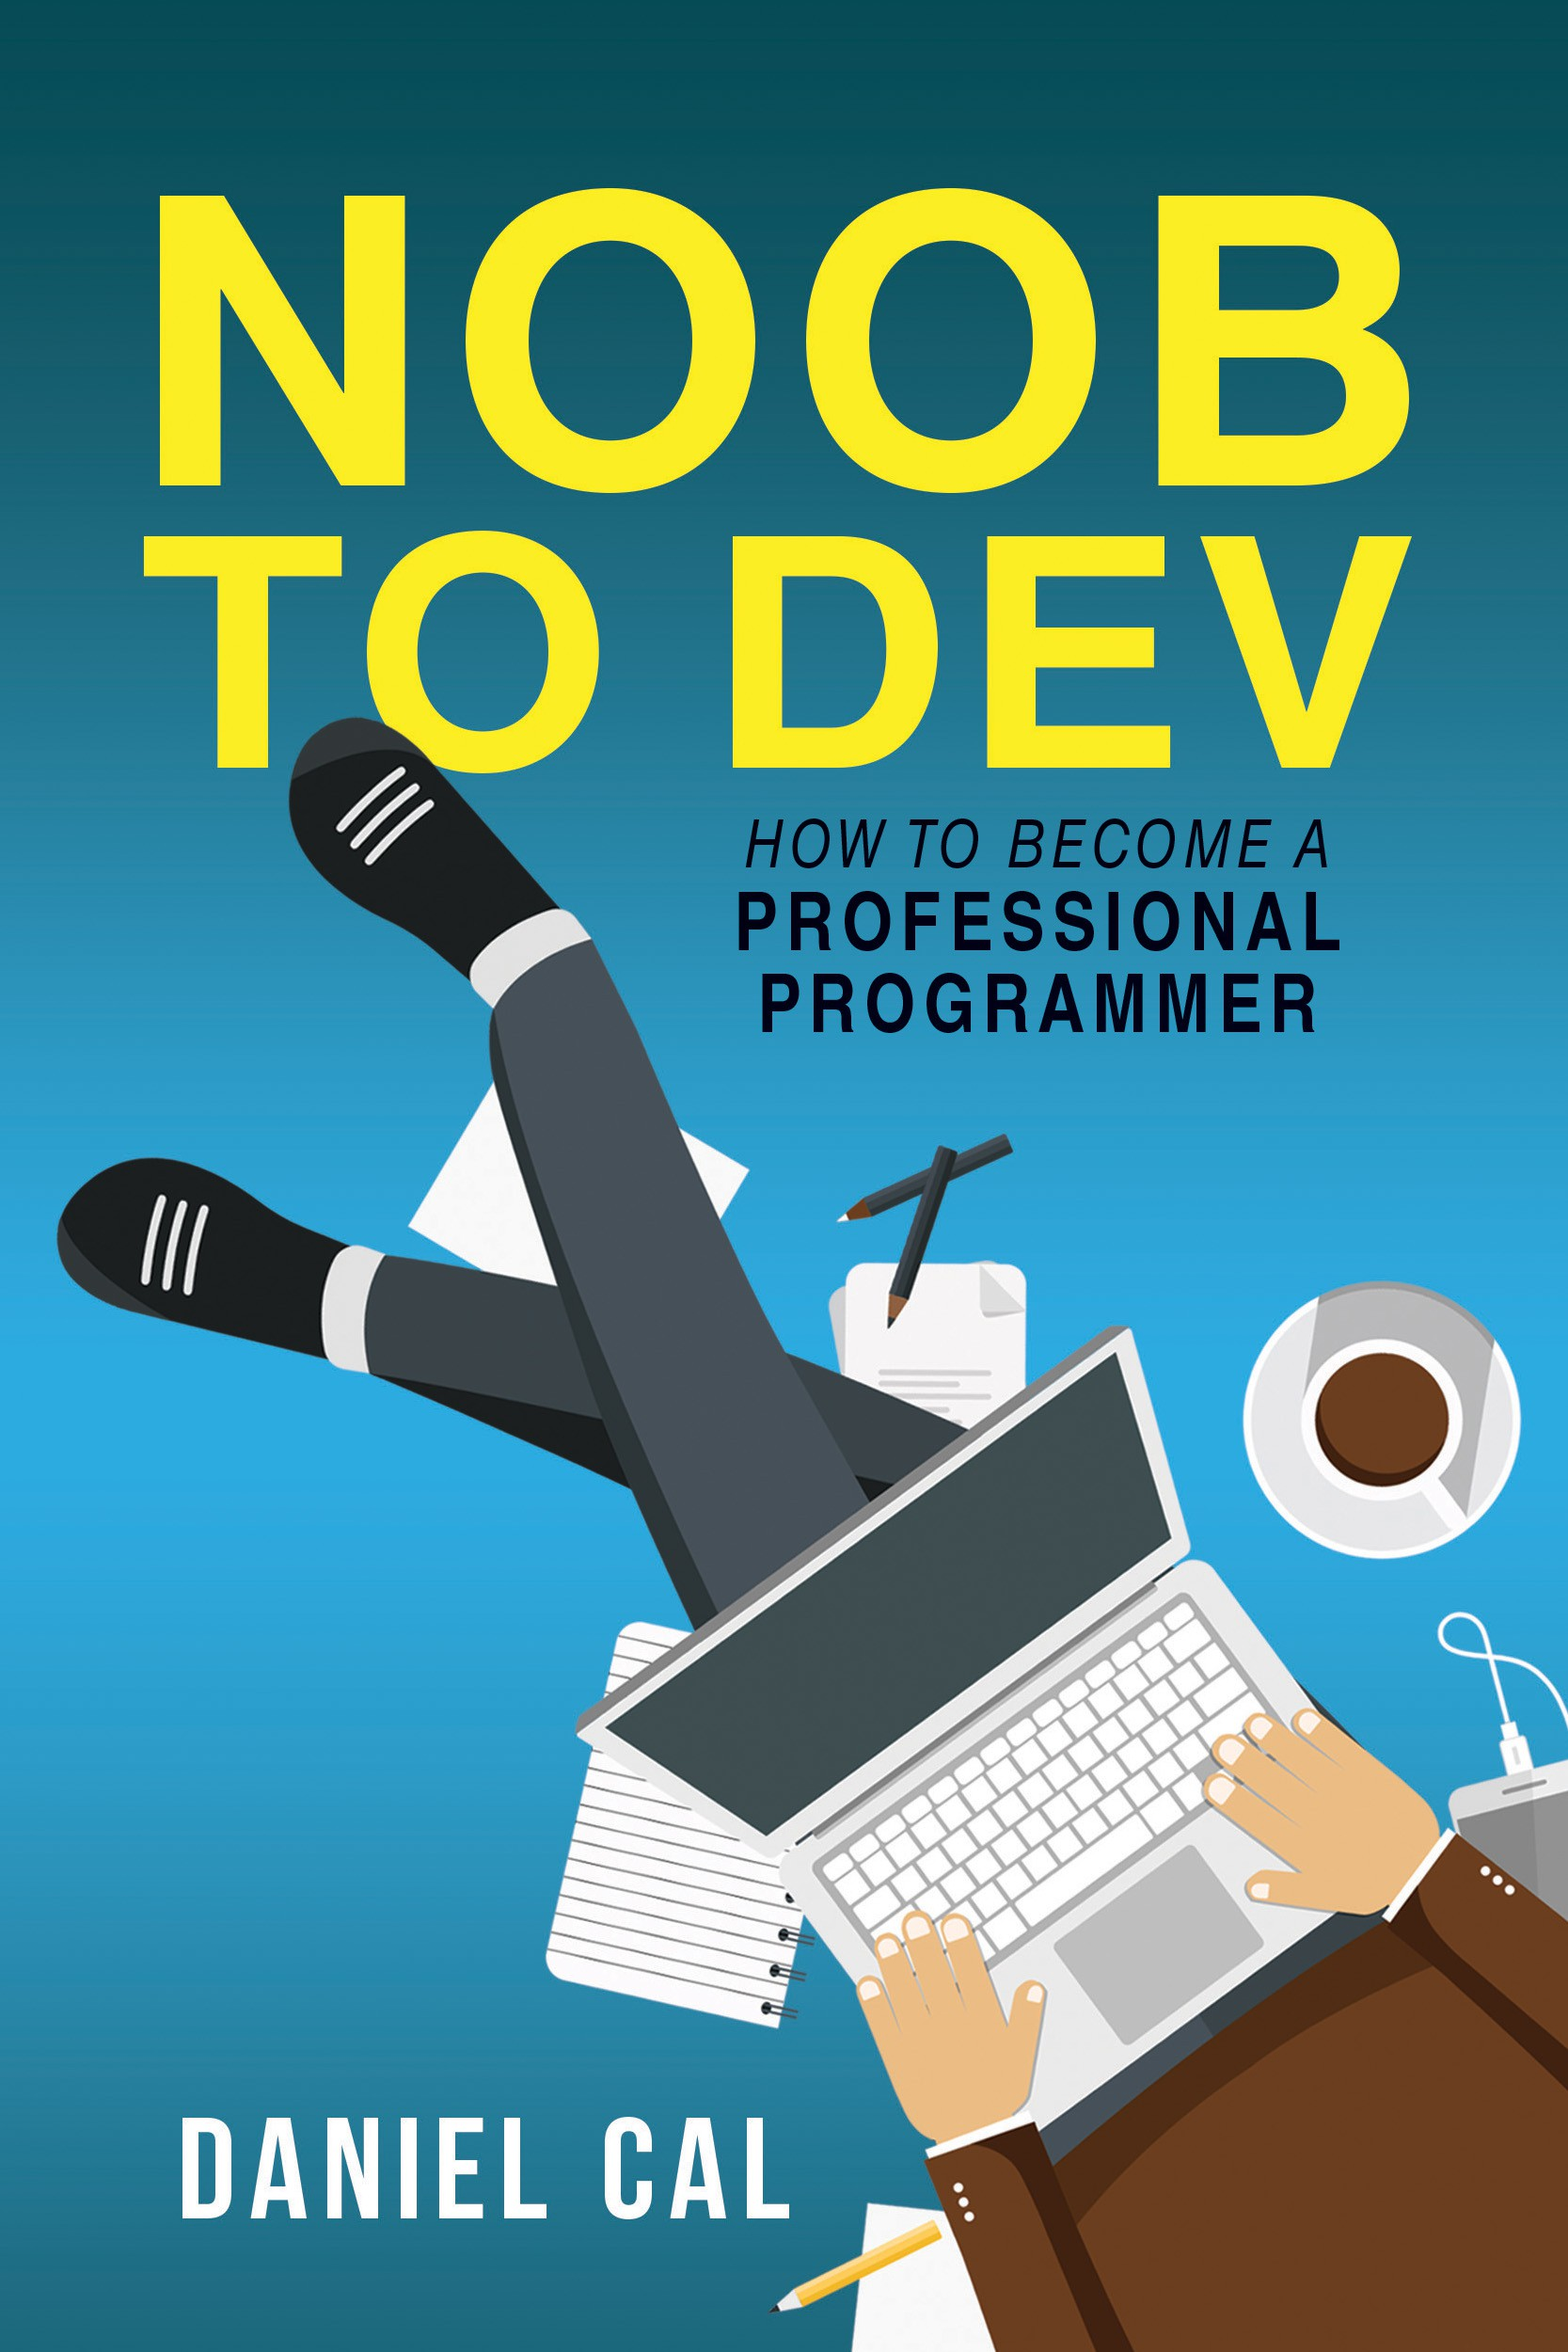 Design a Book Cover for a How To Learn Programming Book